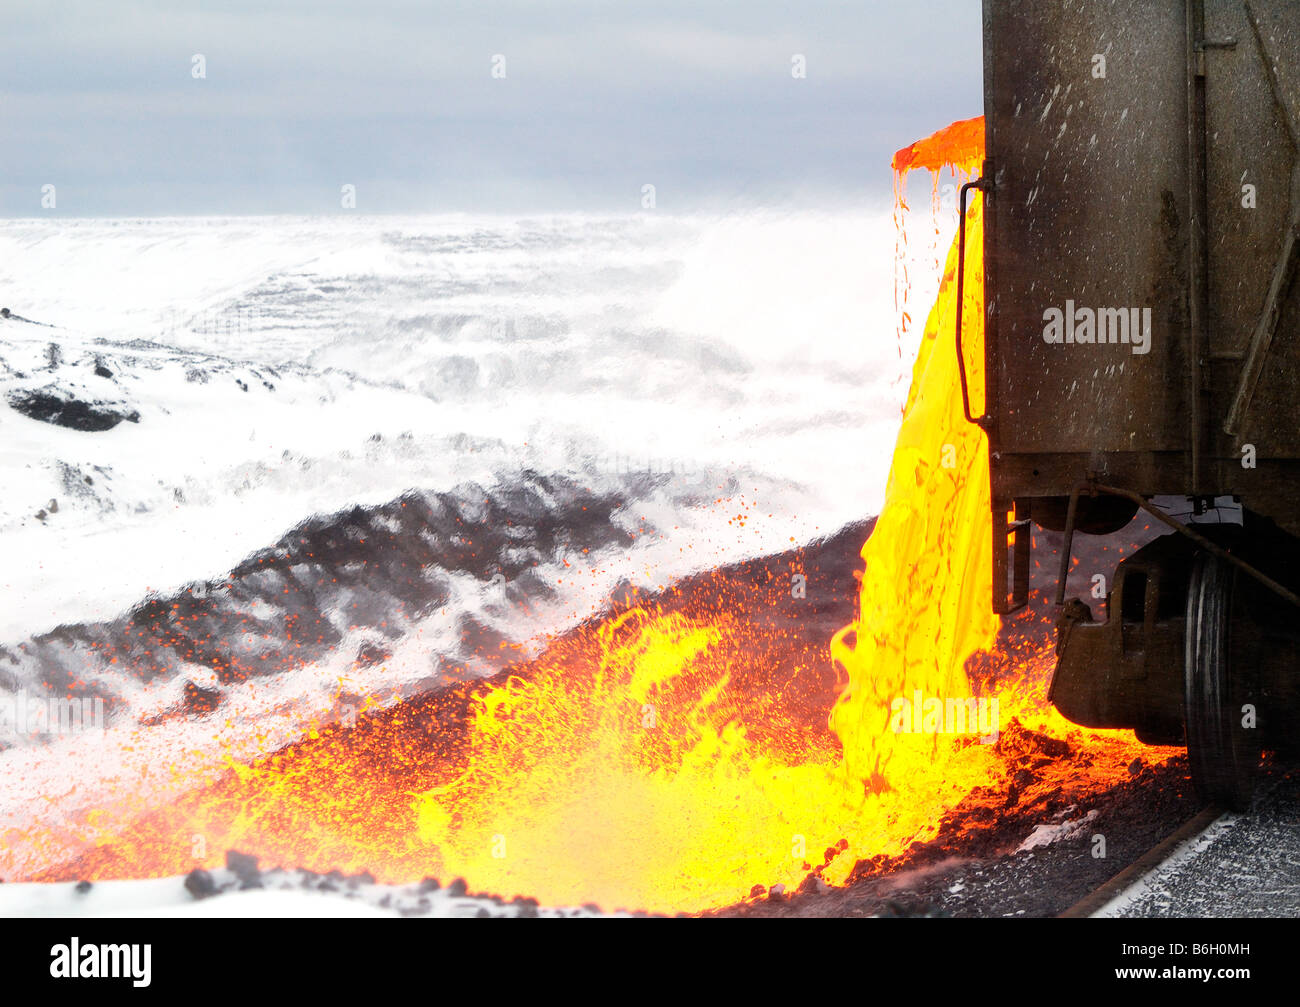 This is one of the more spectacular sights in the mining industry. Pouring slag is very much like flowing lava. - Stock Image